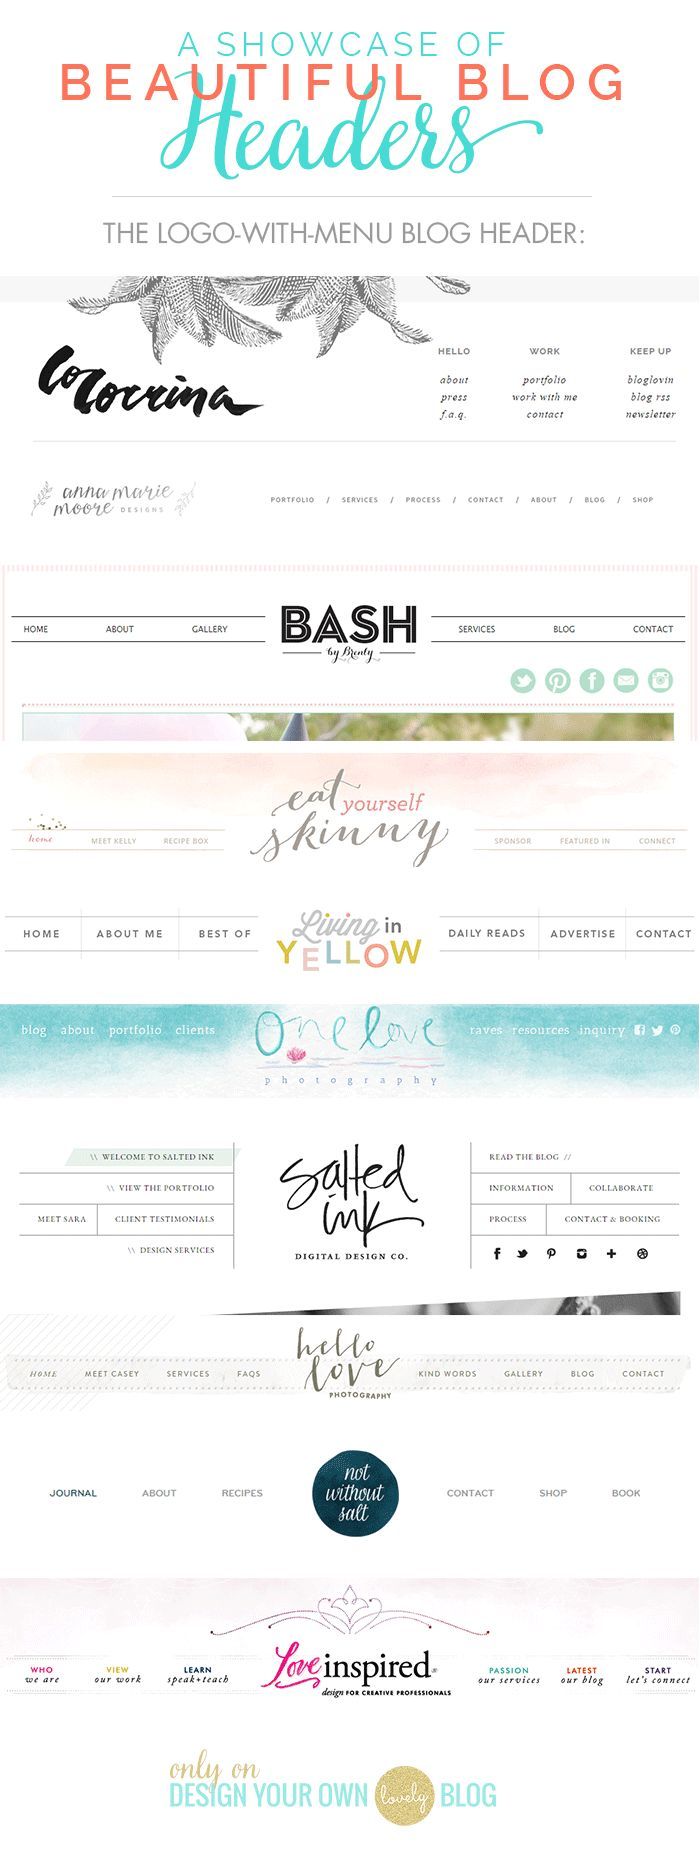 Beautiful blog headers balanced with logos and menu bars. See more blog header inspiration at DesignYourOwnBlog.com.